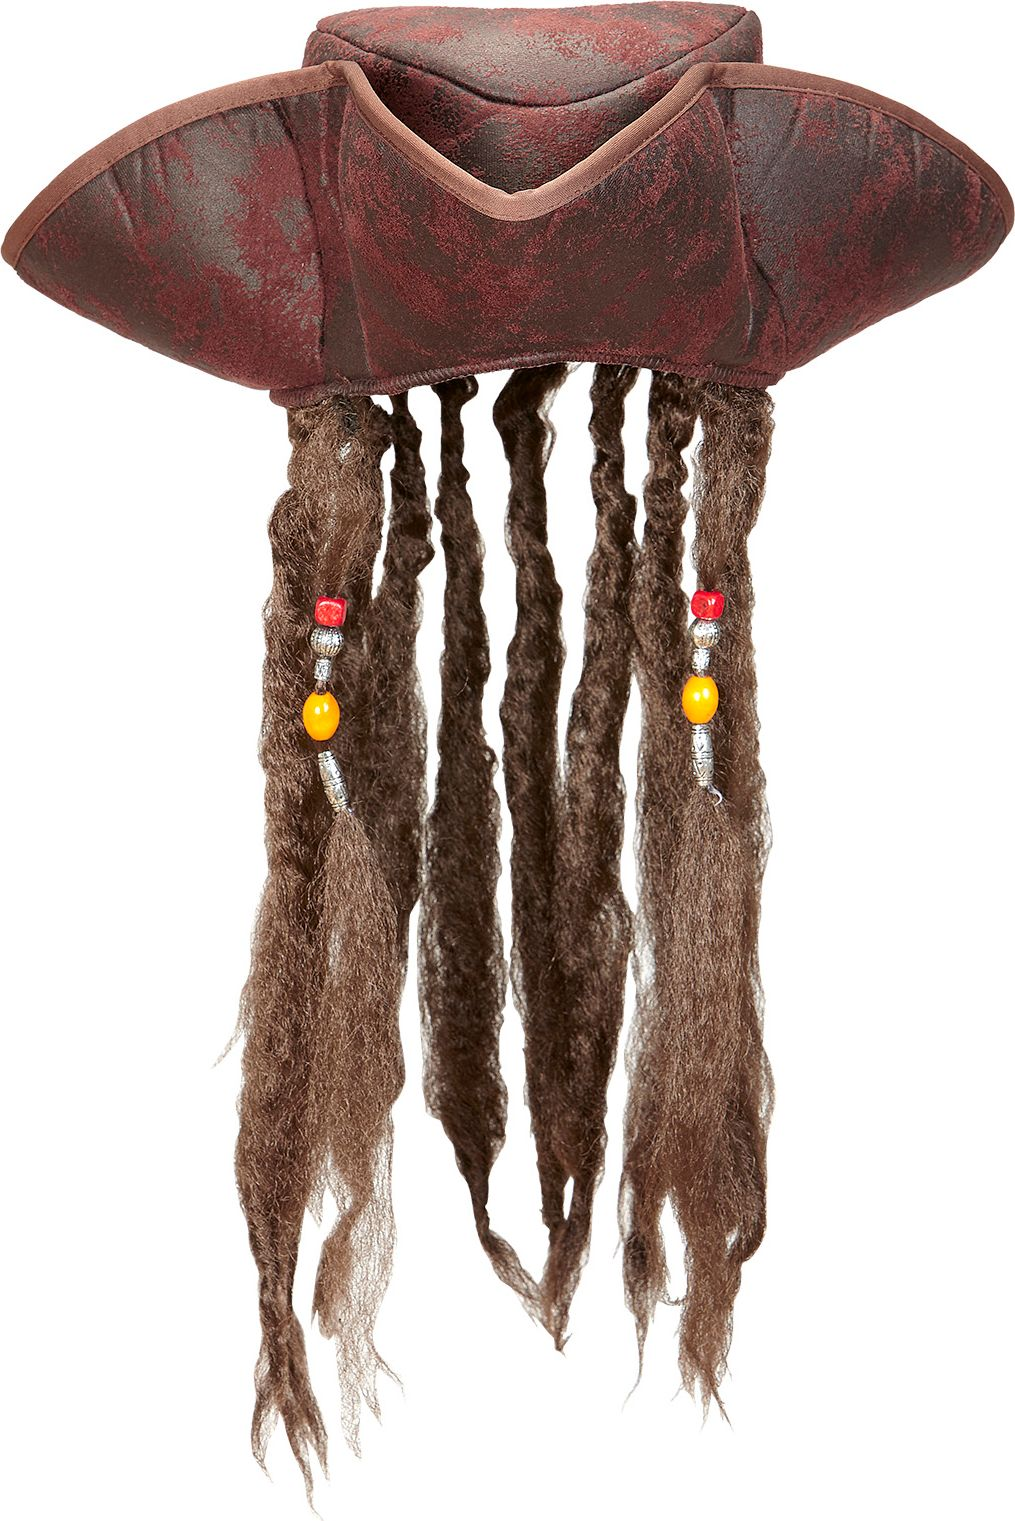 Piraten tricorn met dreadlocks